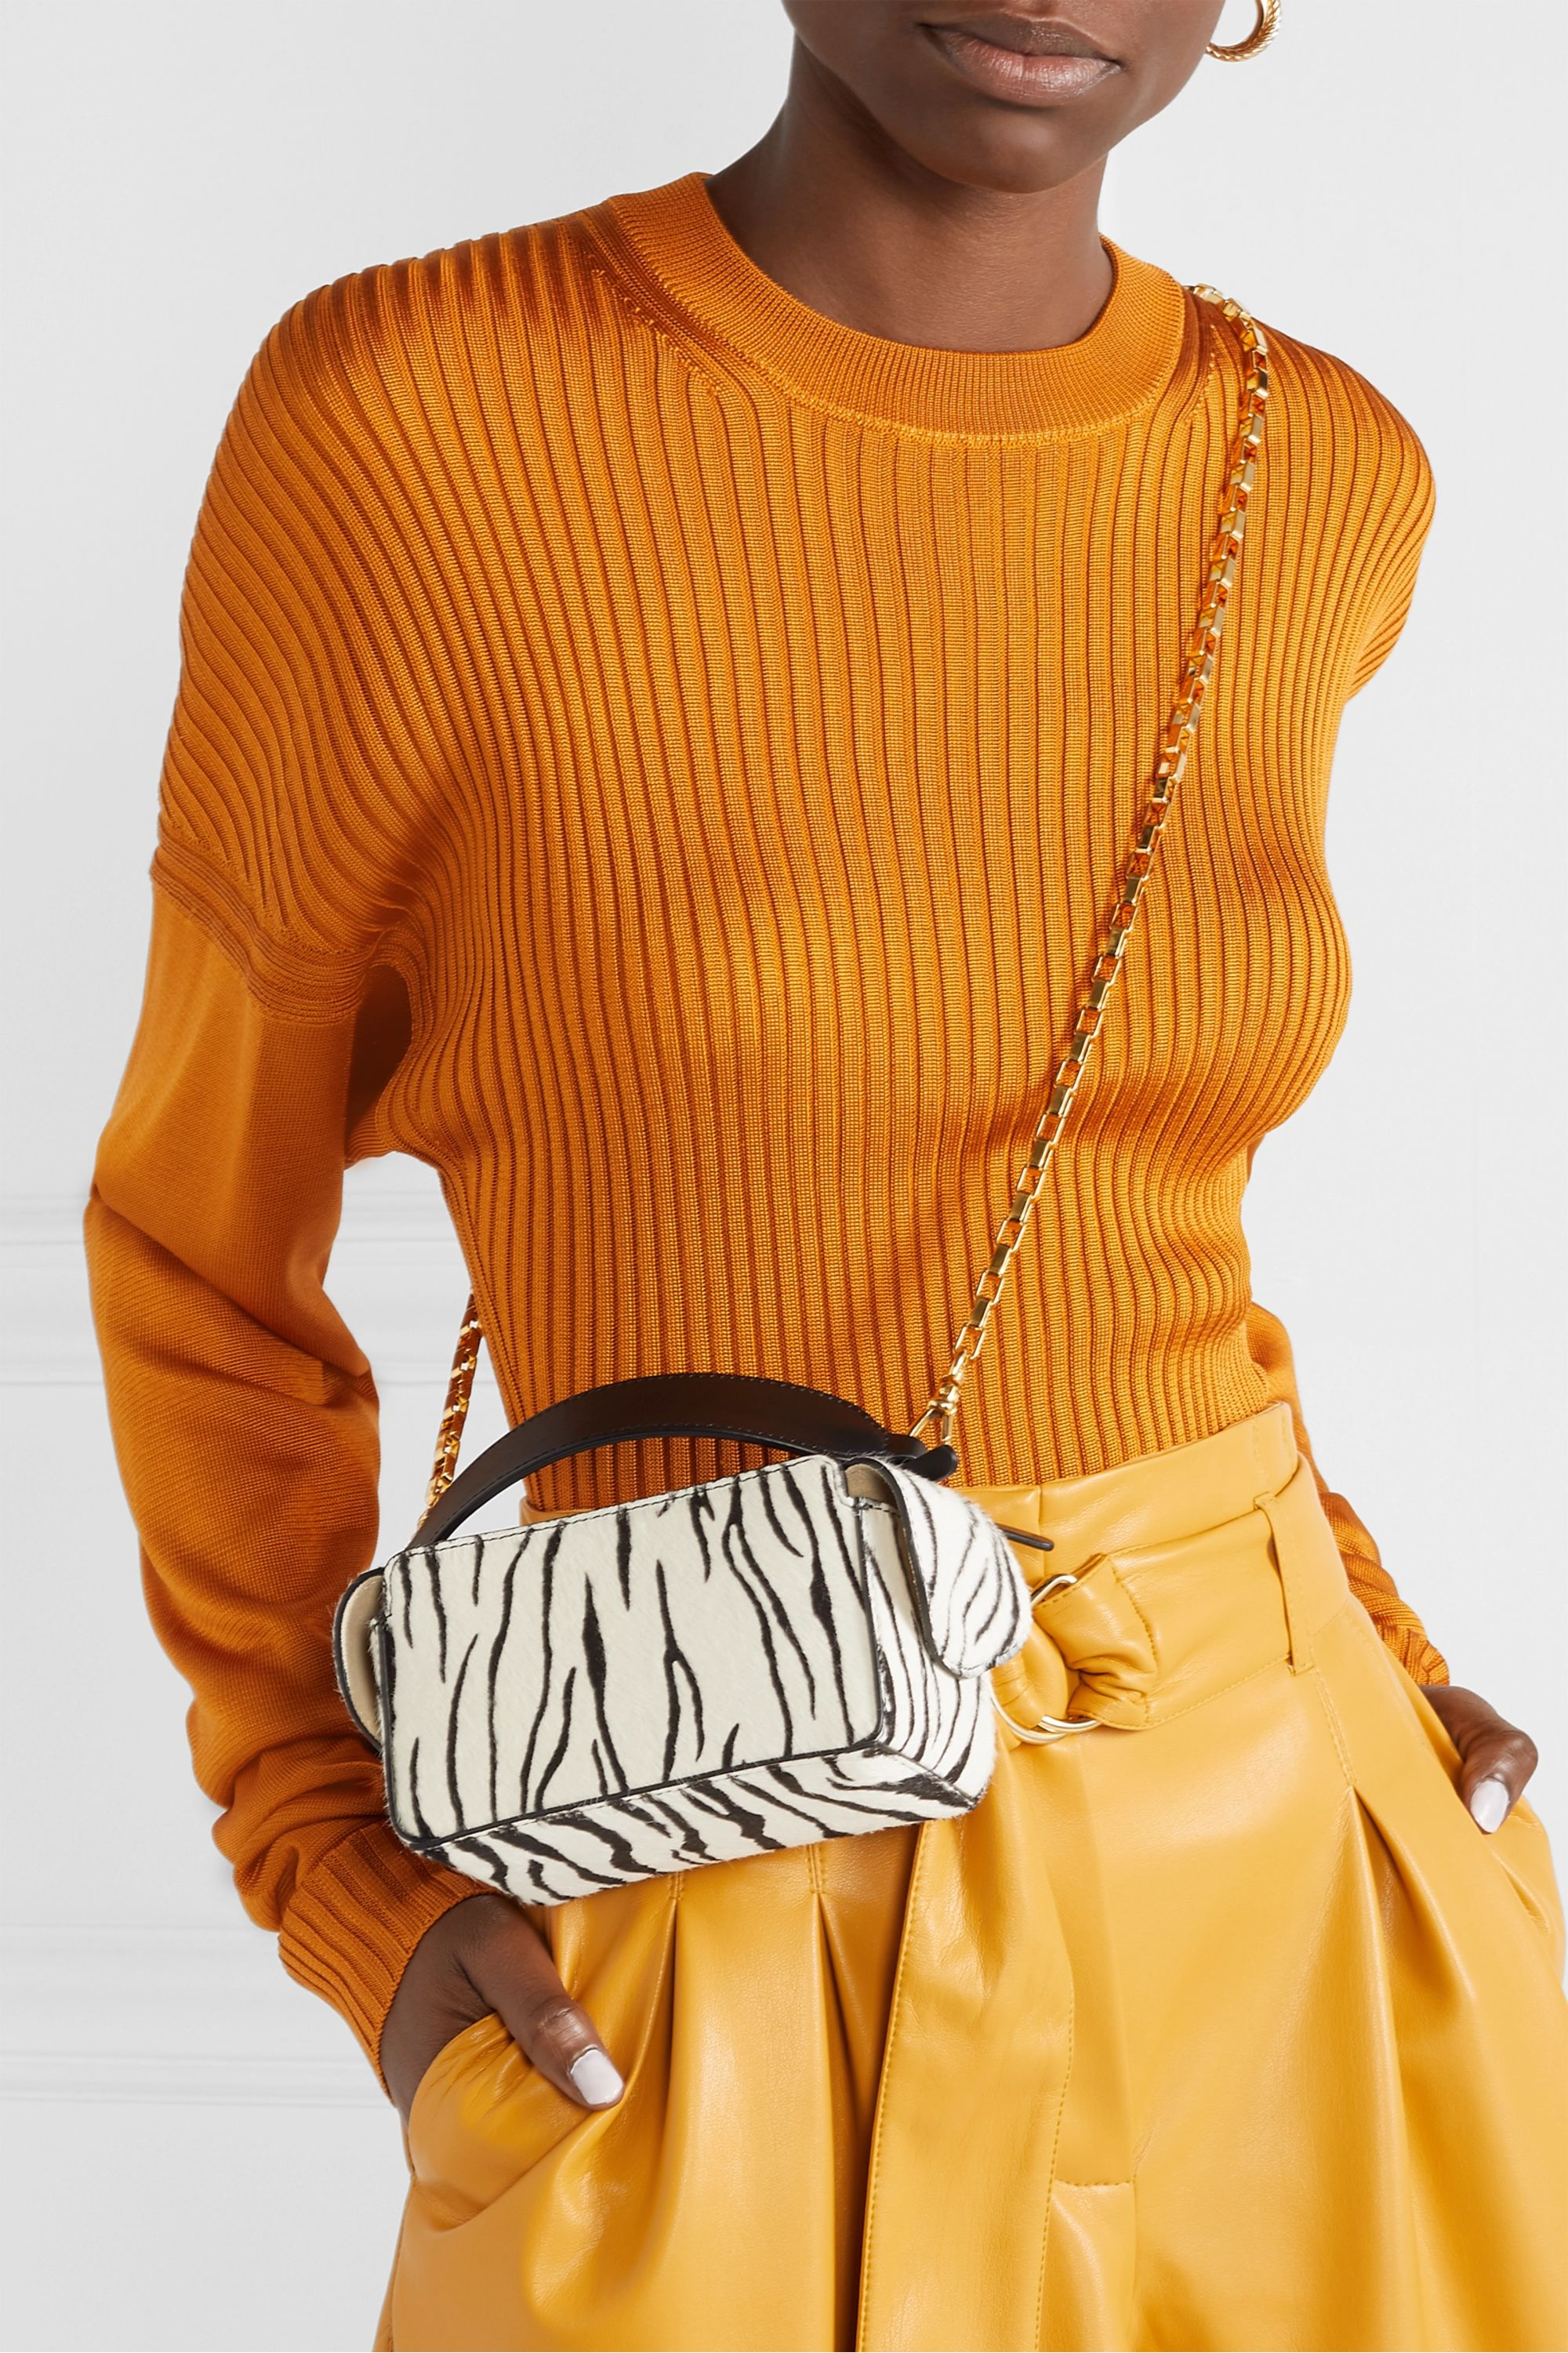 Wandler Yara Box leather-trimmed zebra-print calf hair shoulder bag